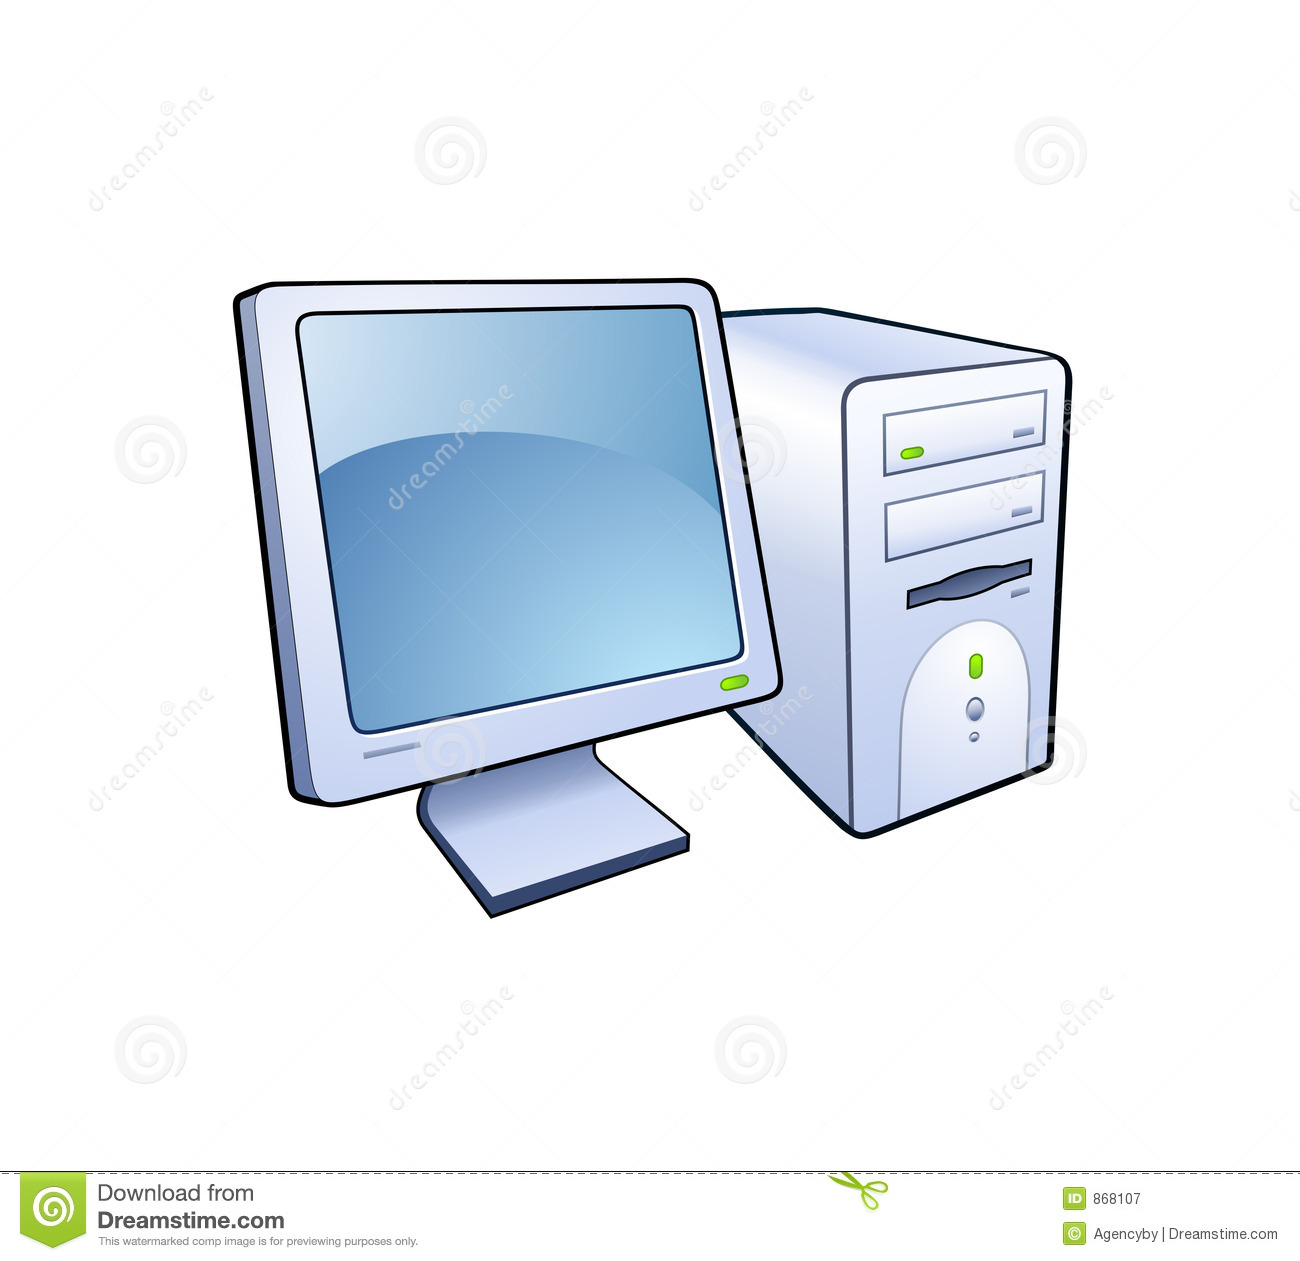 how to put a icon on computer